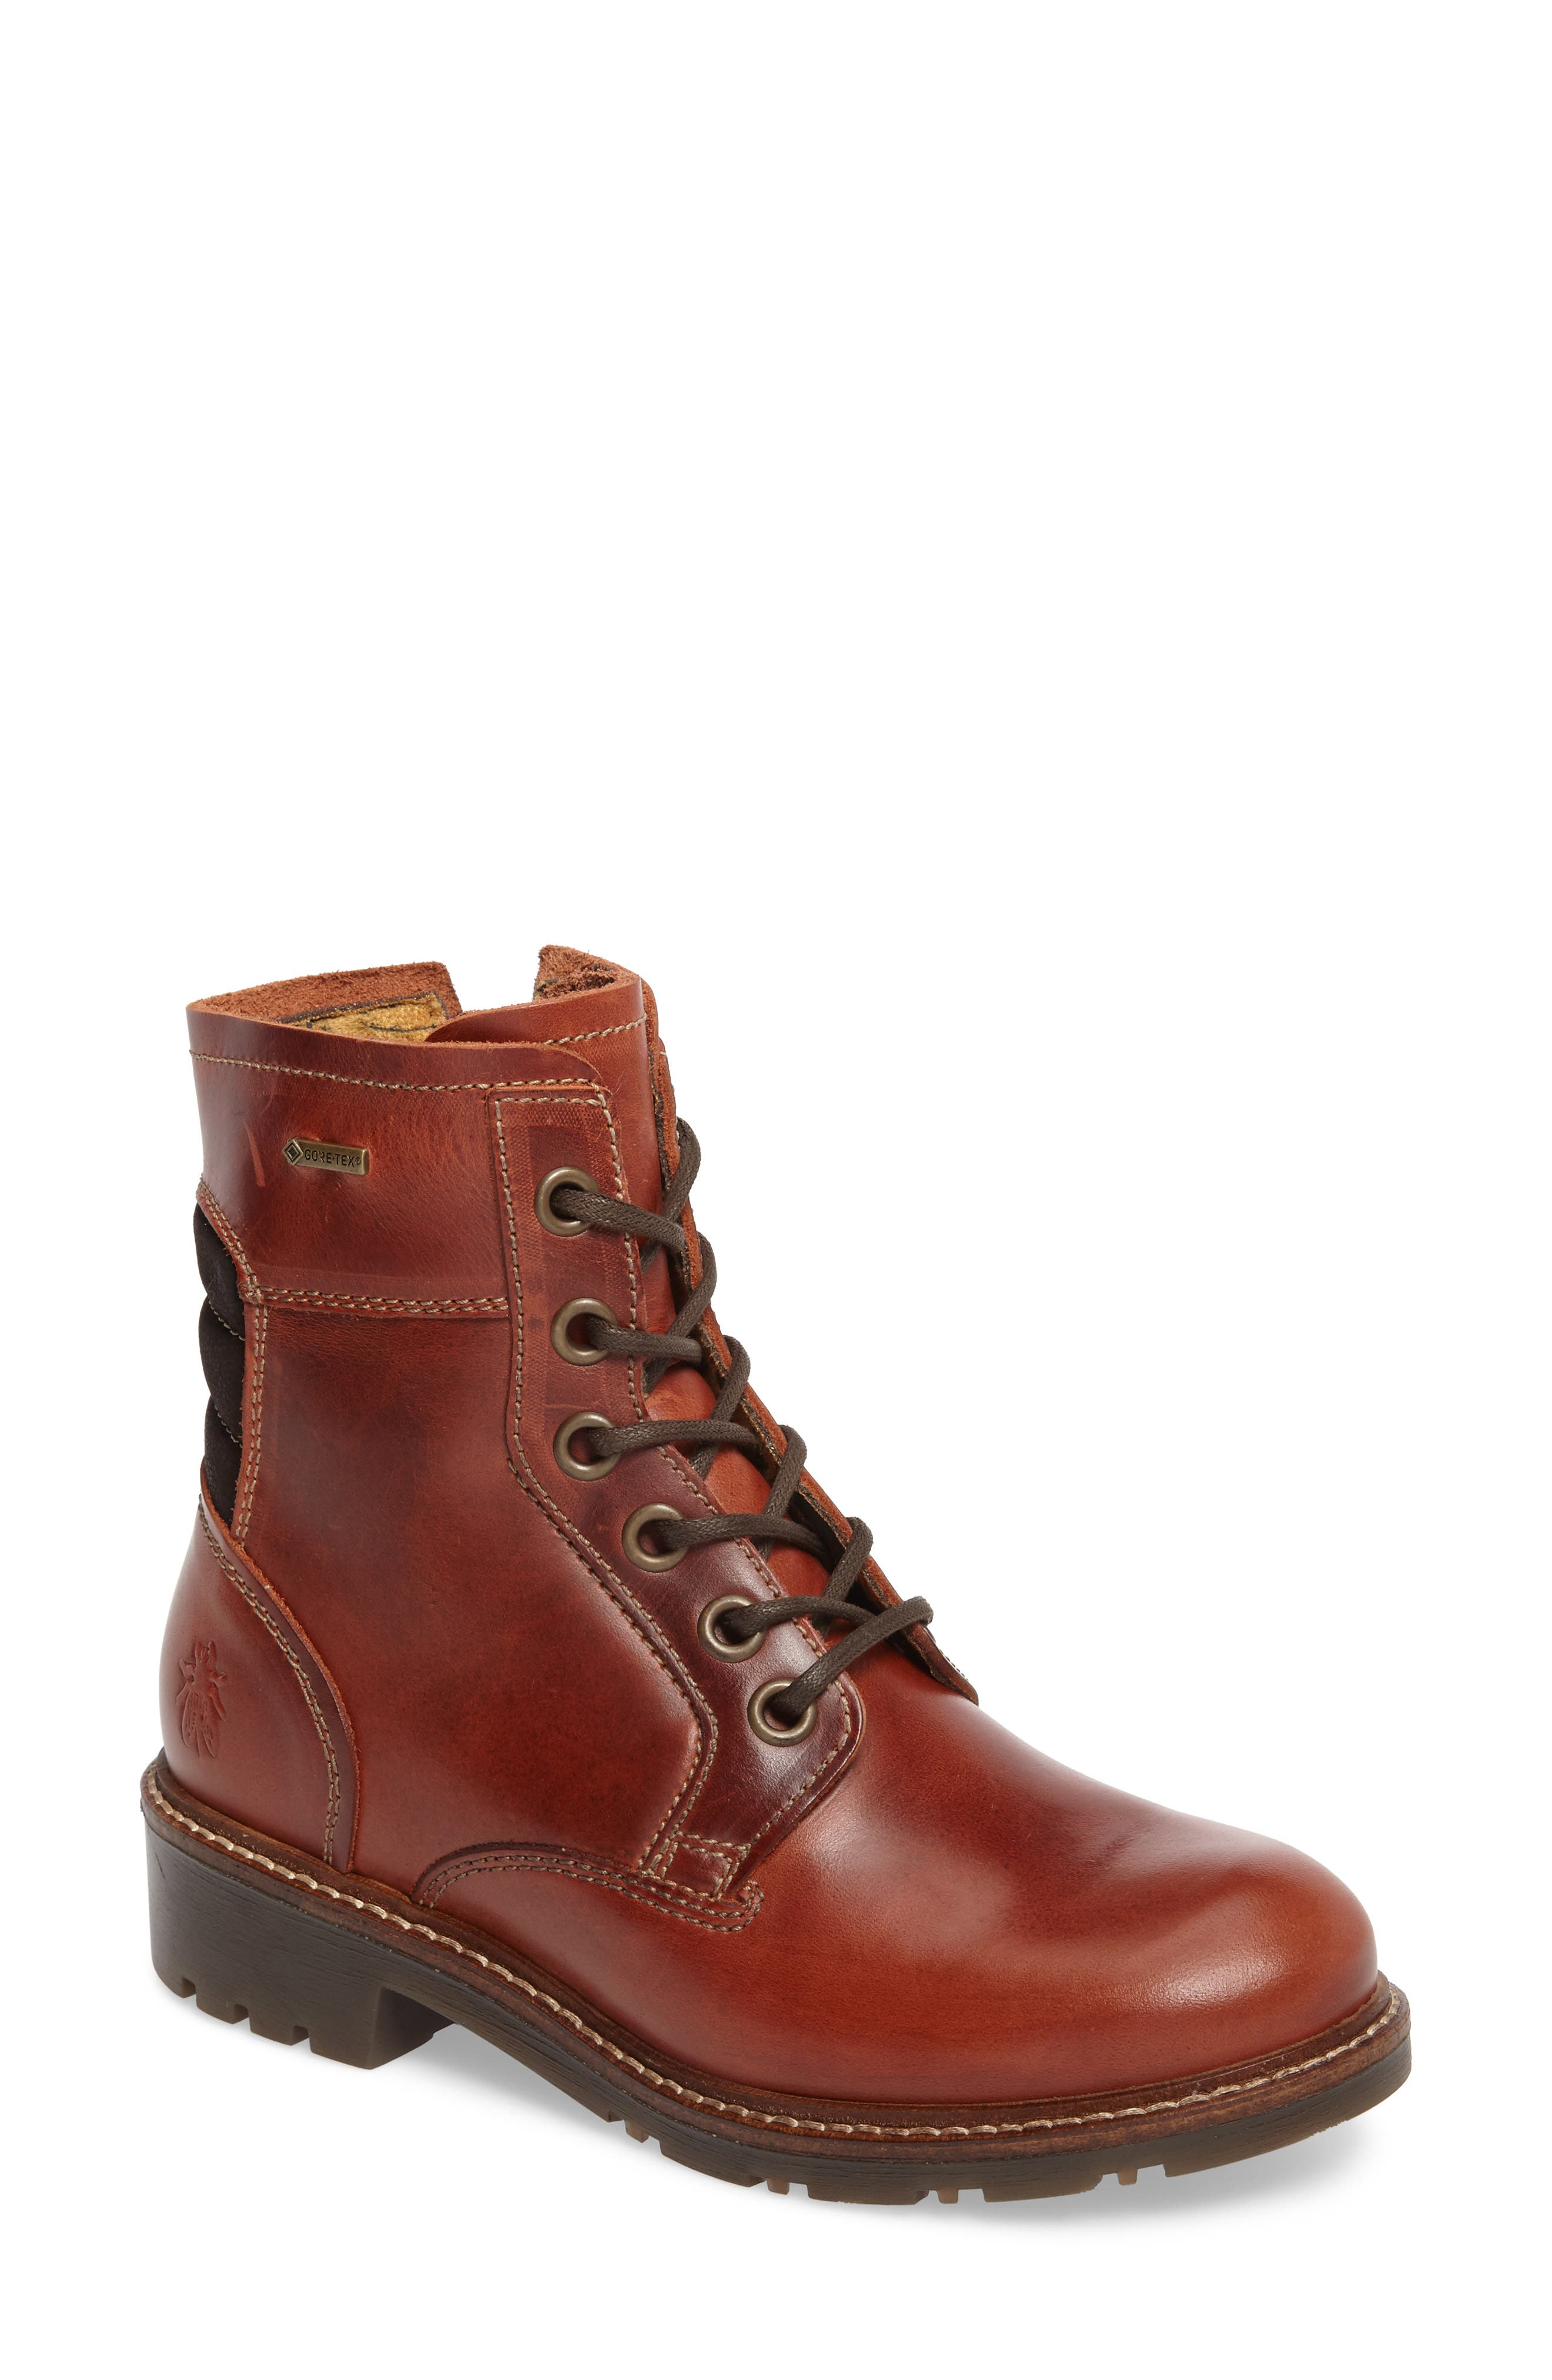 Alternate Image 1 Selected - Fly London Silo Waterproof Gore-Tex® Boot (Women)